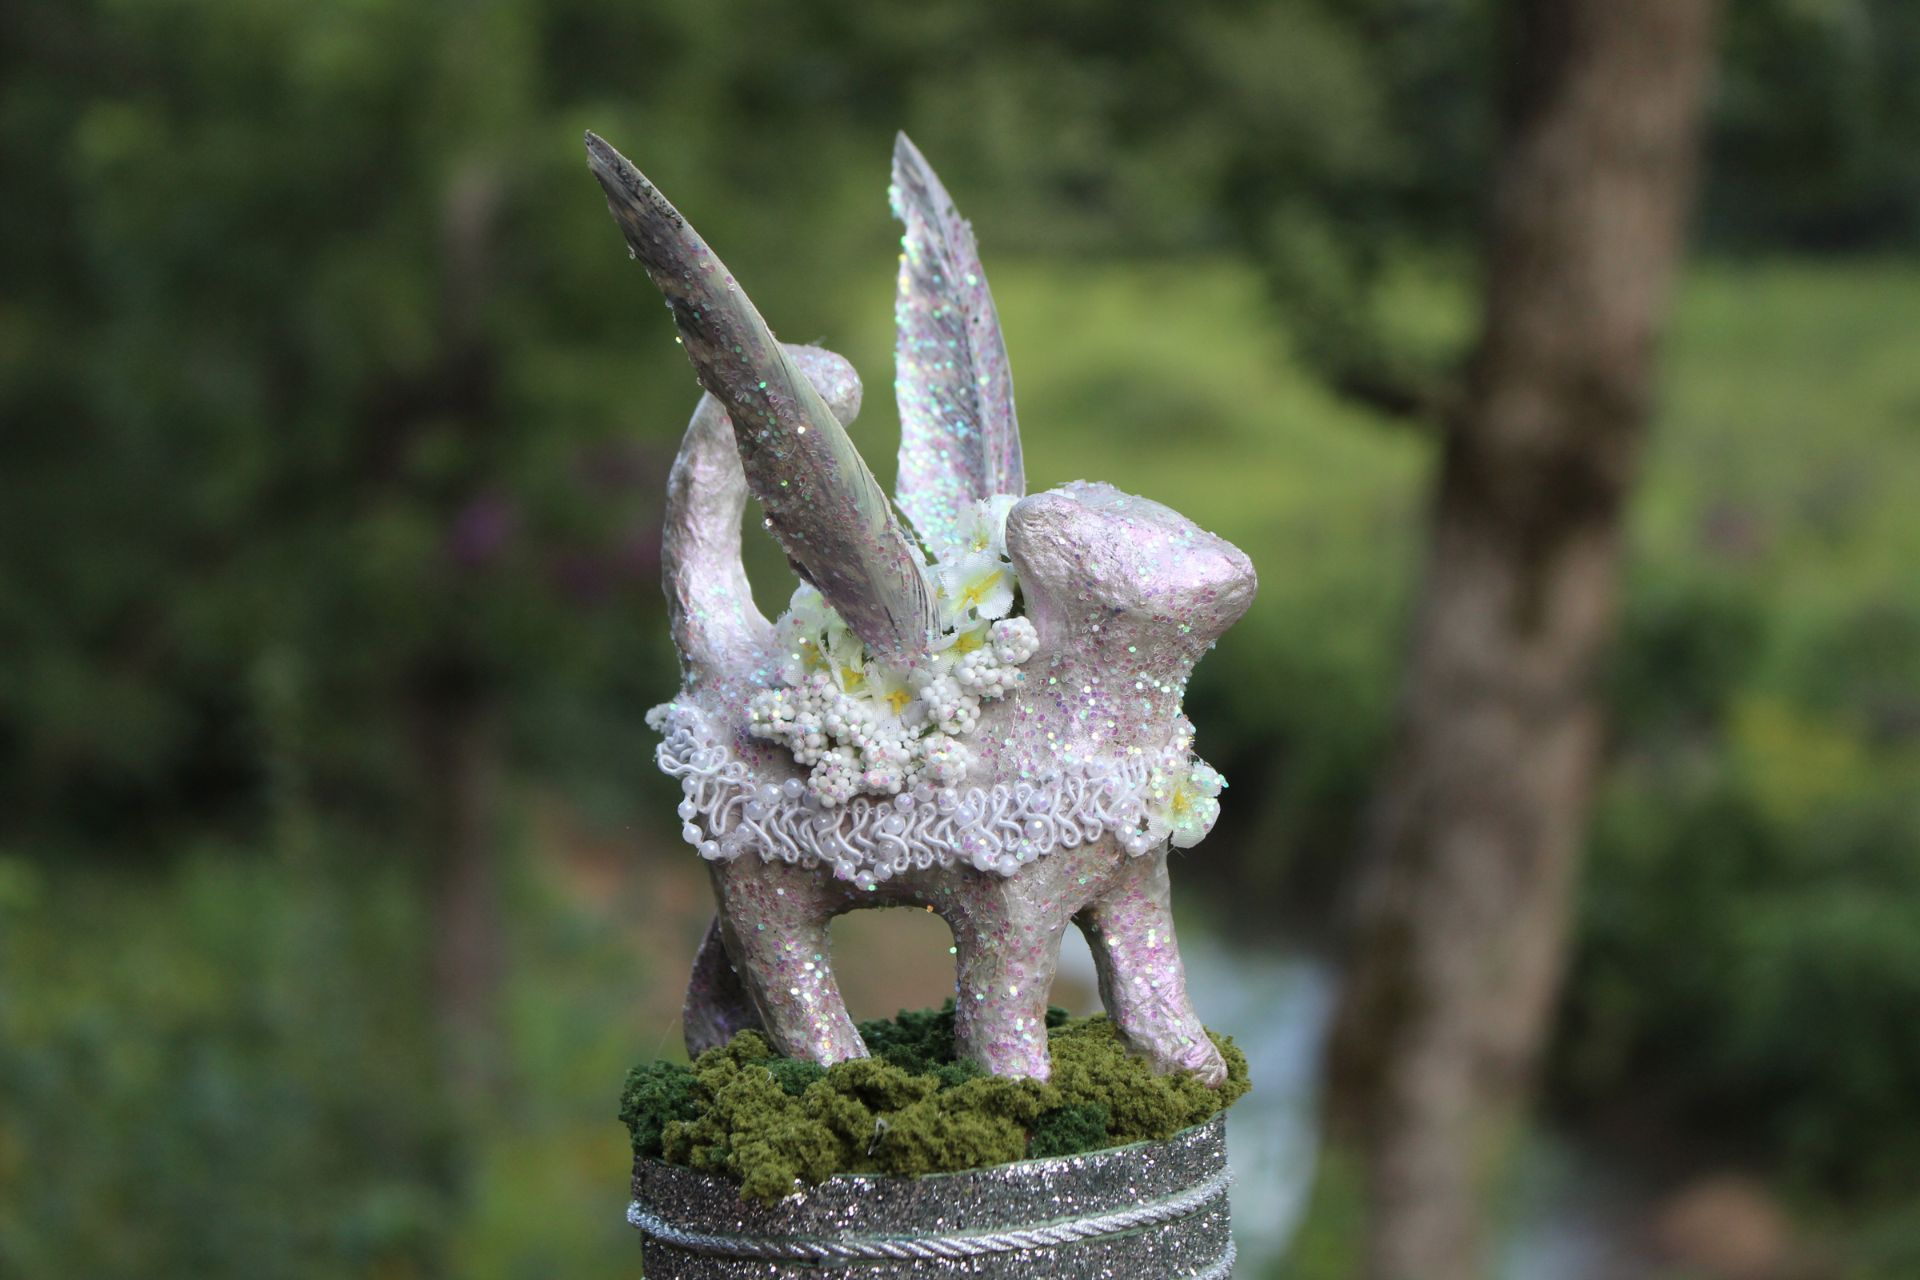 SPARKLE KITTY, an Endearing, One of a Kind Feline Cremation Art Urn